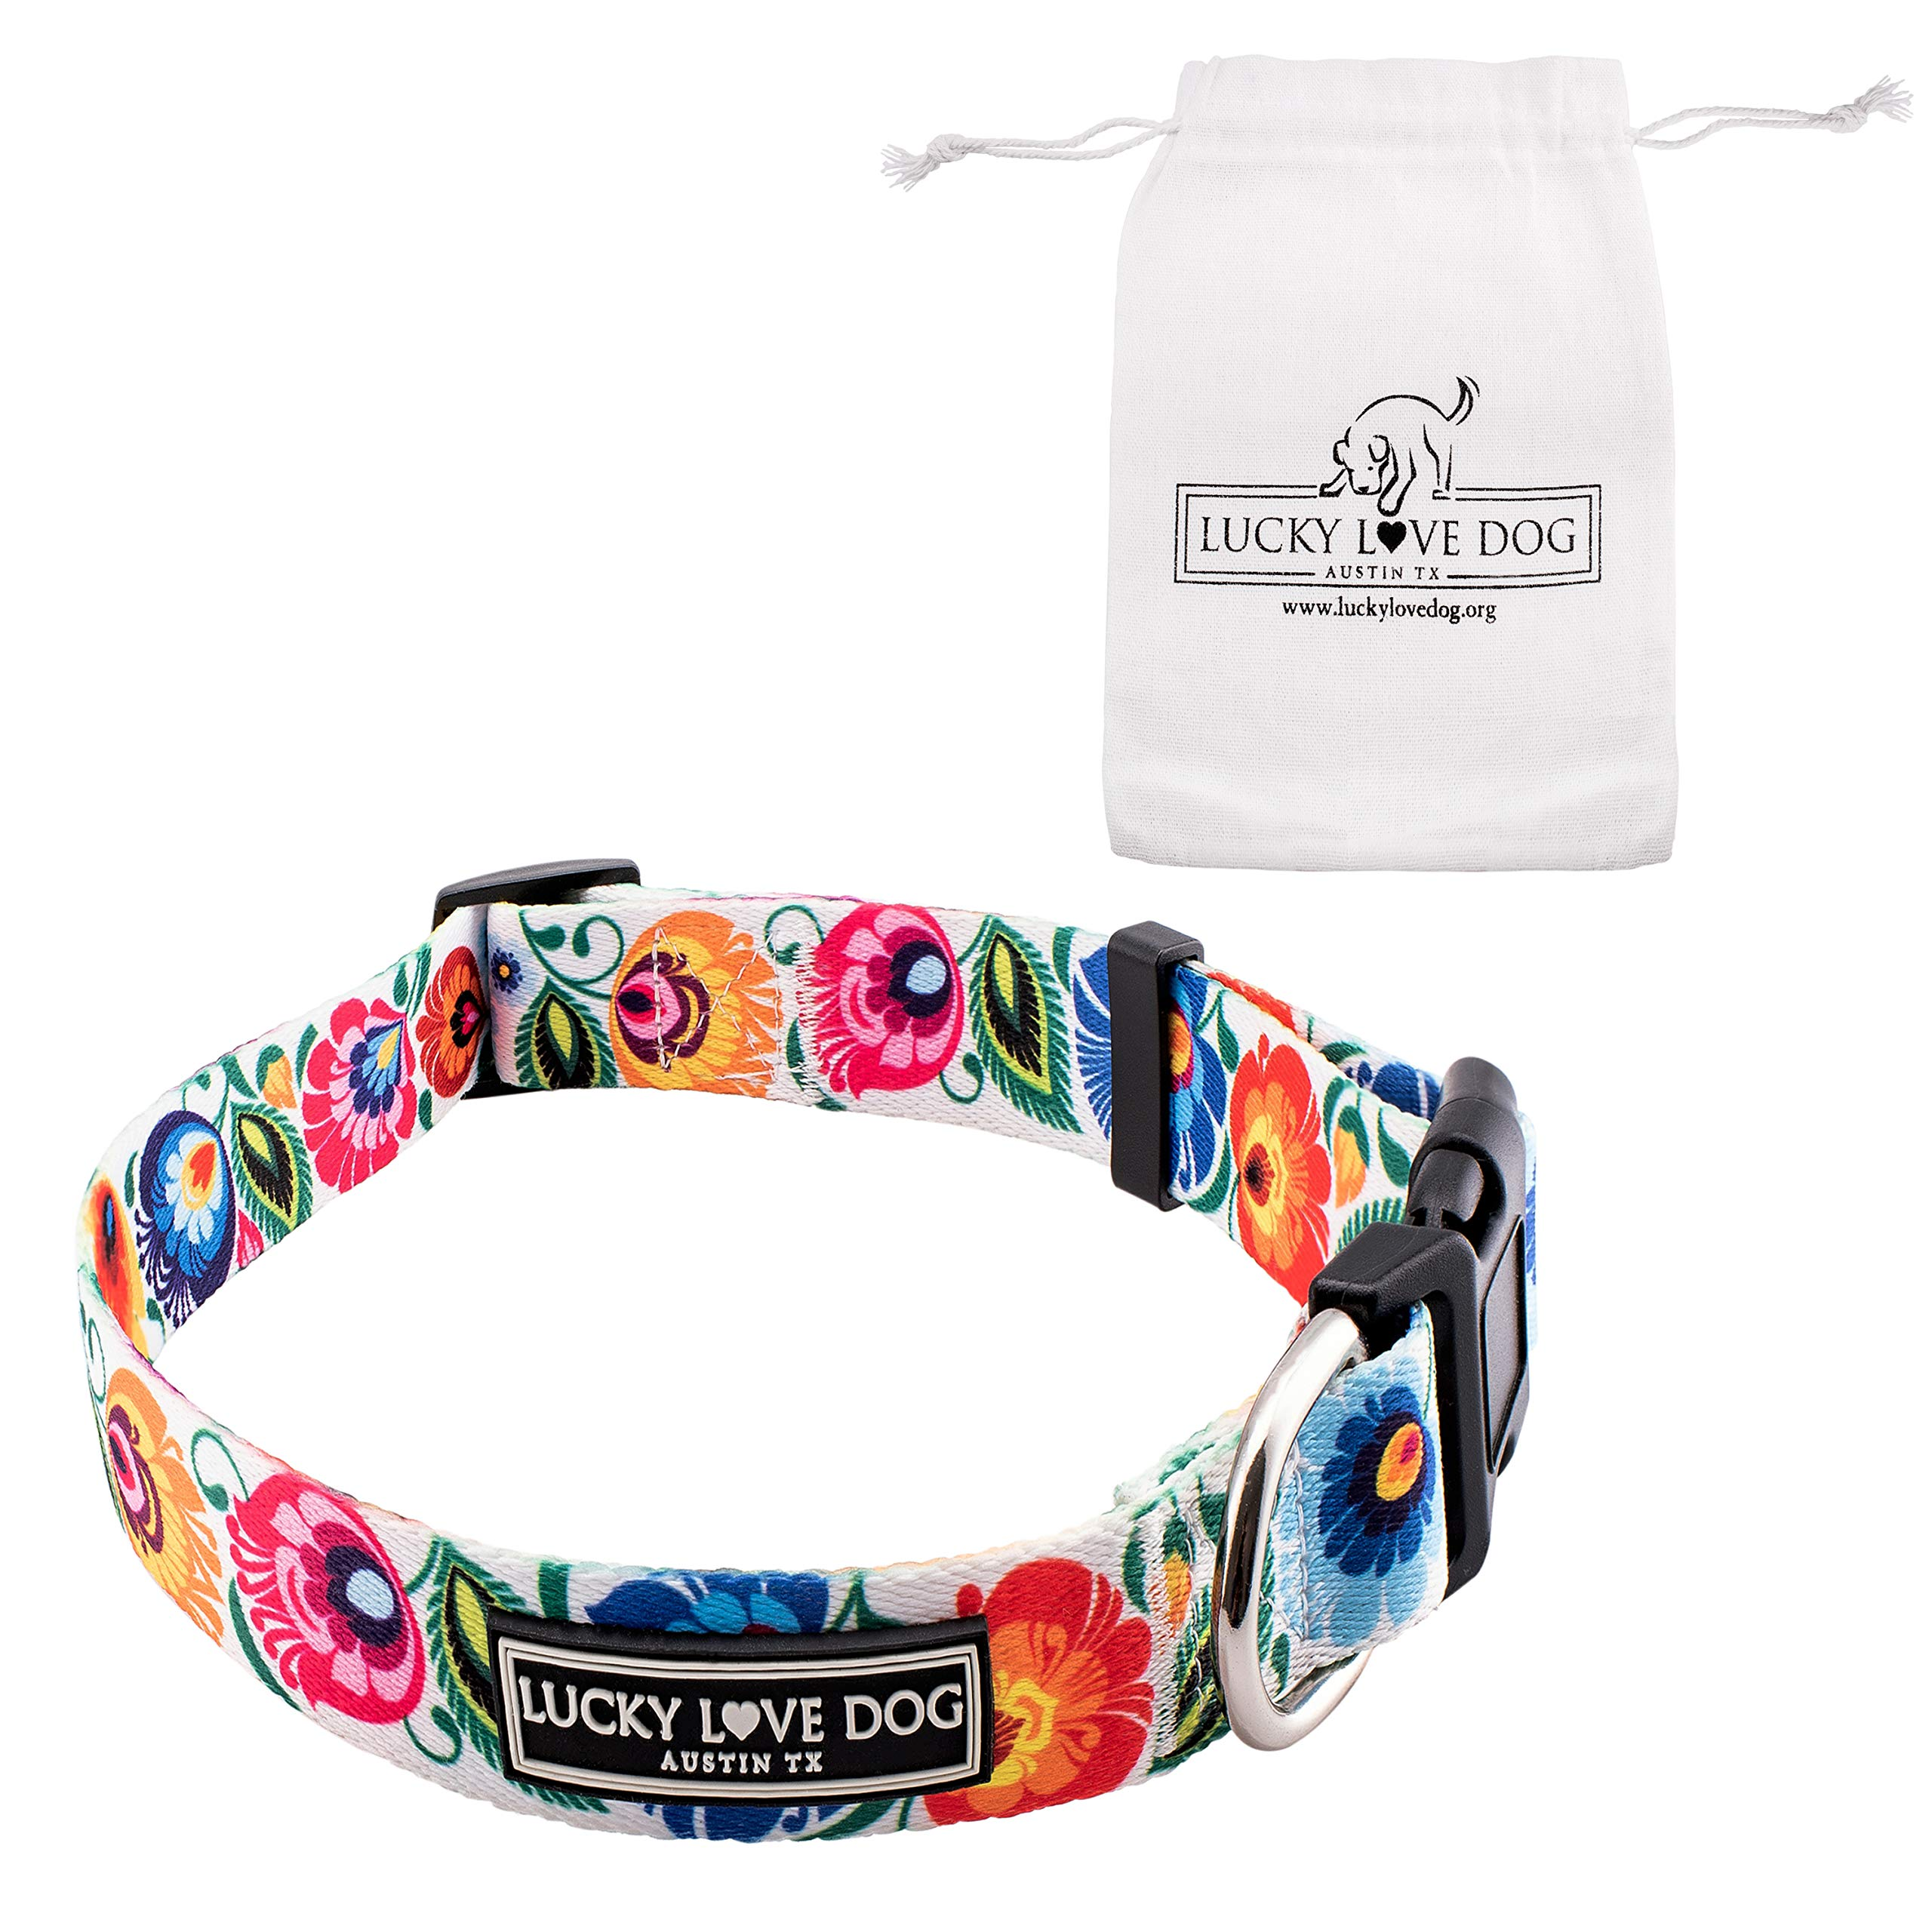 Lucky Love Dog Collars   Cute Girl Collars   Small Medium Large Female Collars   Part of Purchase Donated to Rescue (Lady Bird, Large)